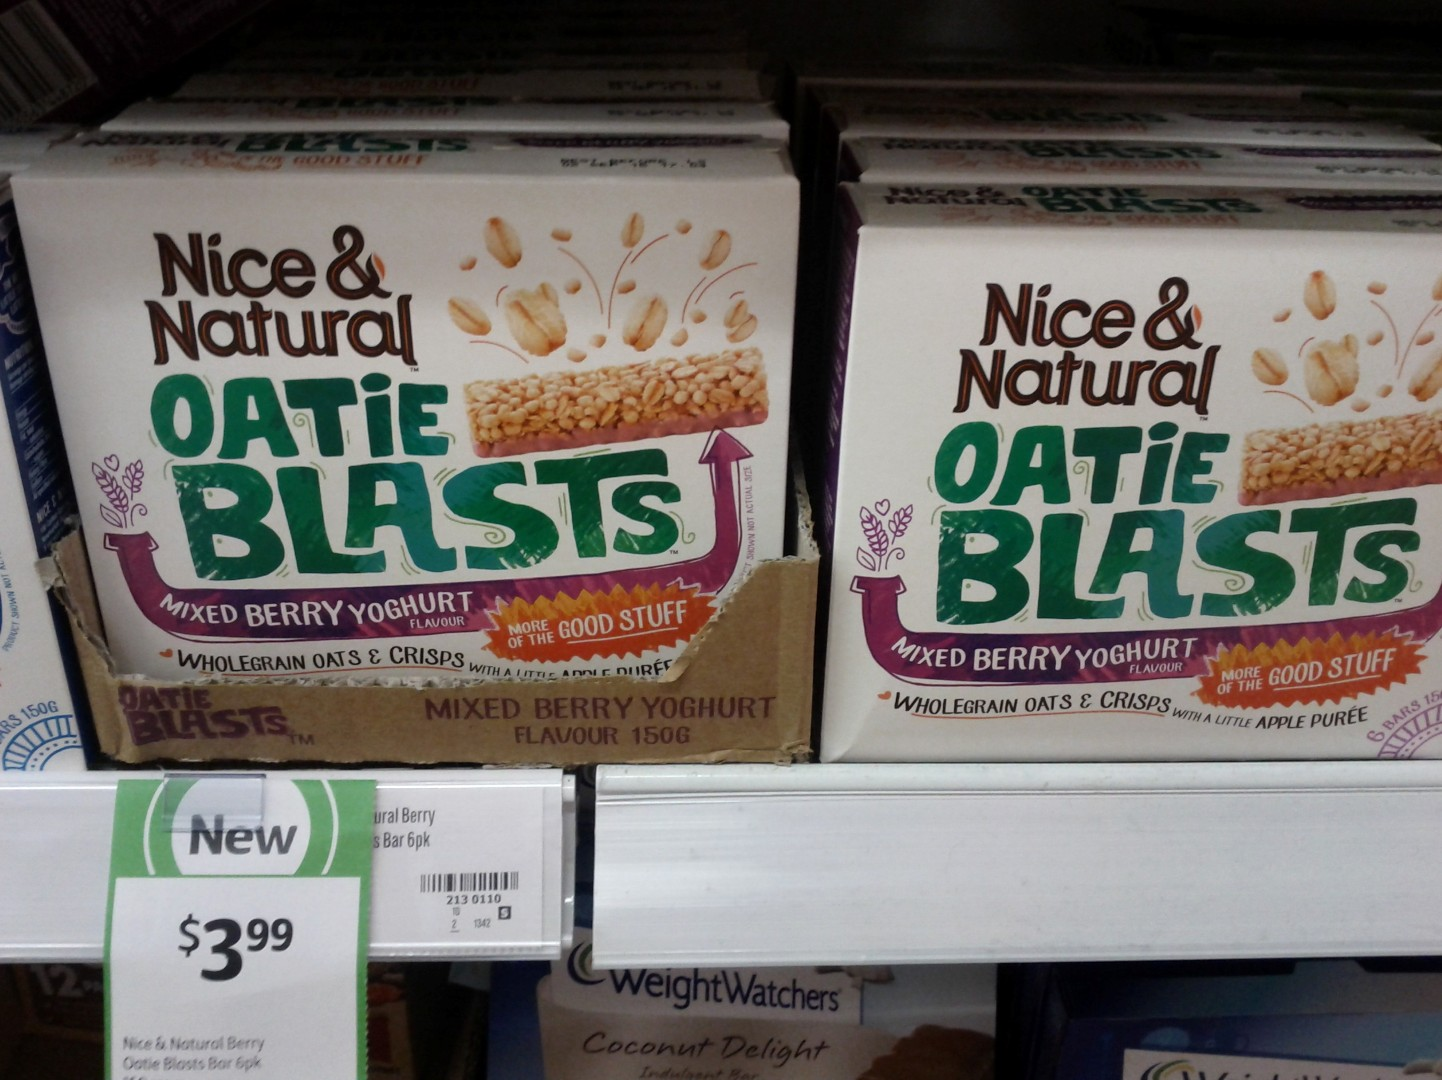 Nice & Natural 150g Oatie Blasts Mixed Yoghurt Flavour